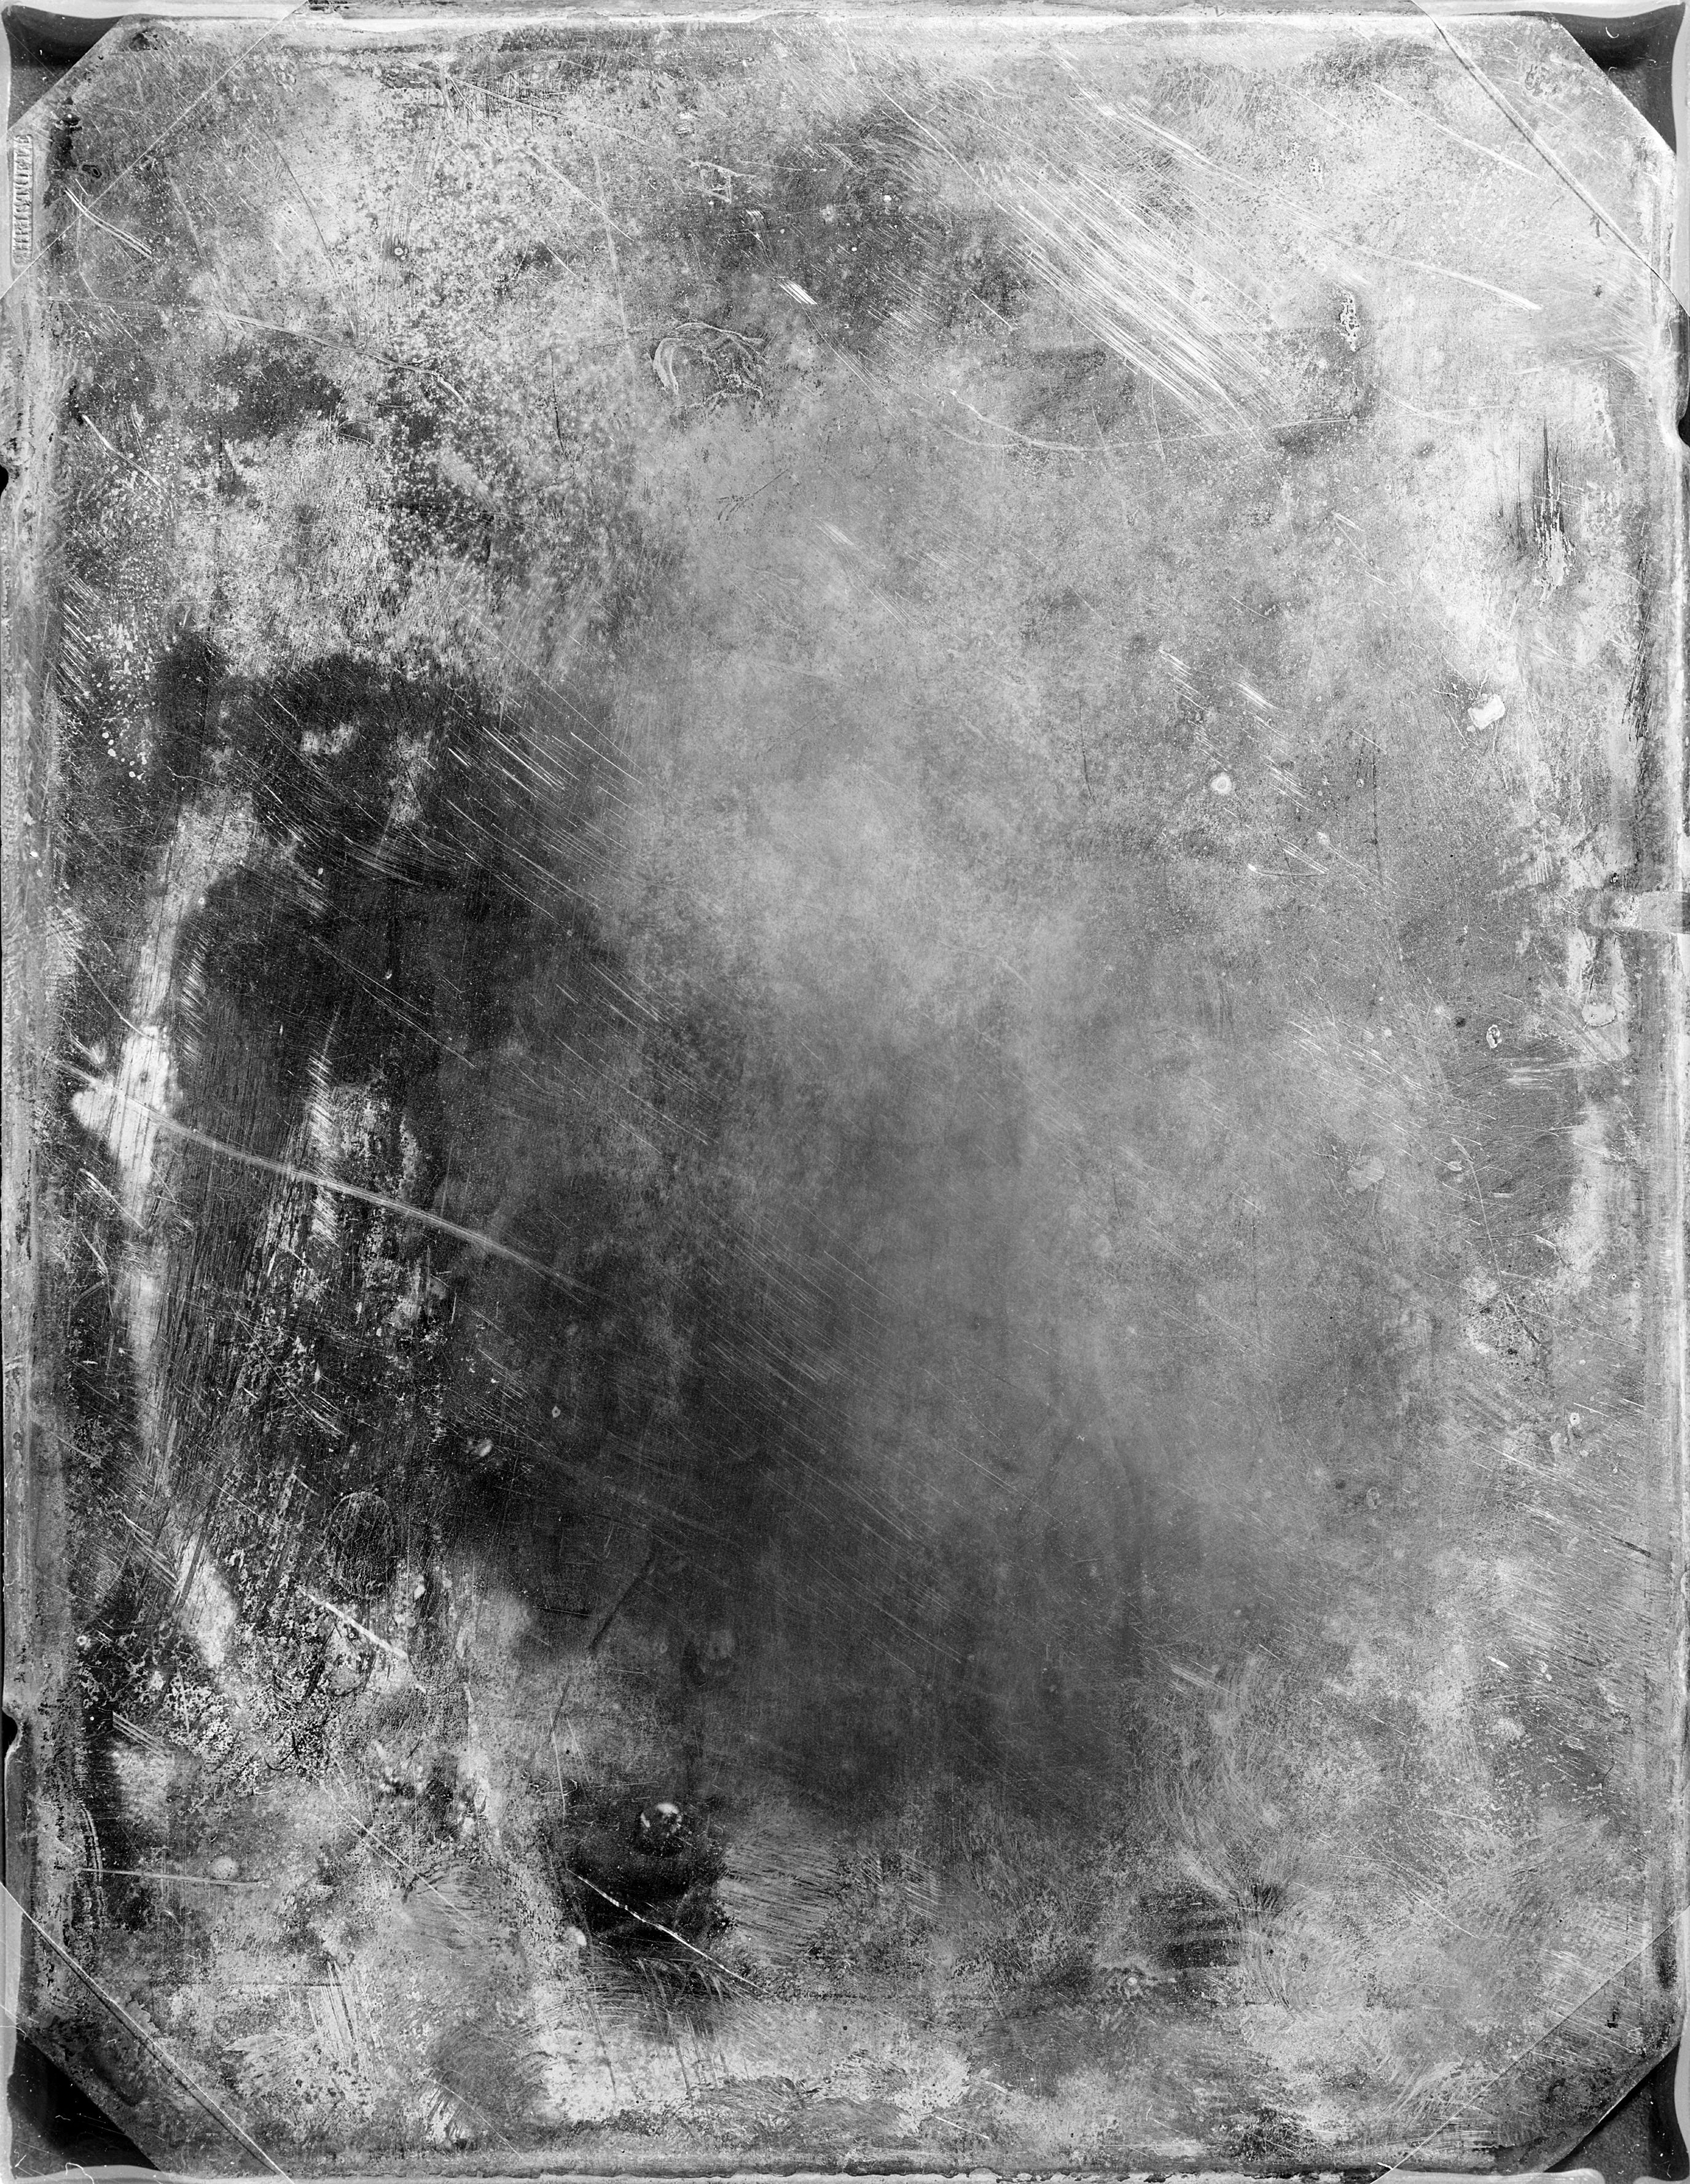 Lost And Taken Free Texture Stock Photos Film Texture Vintage Film Texture Photography